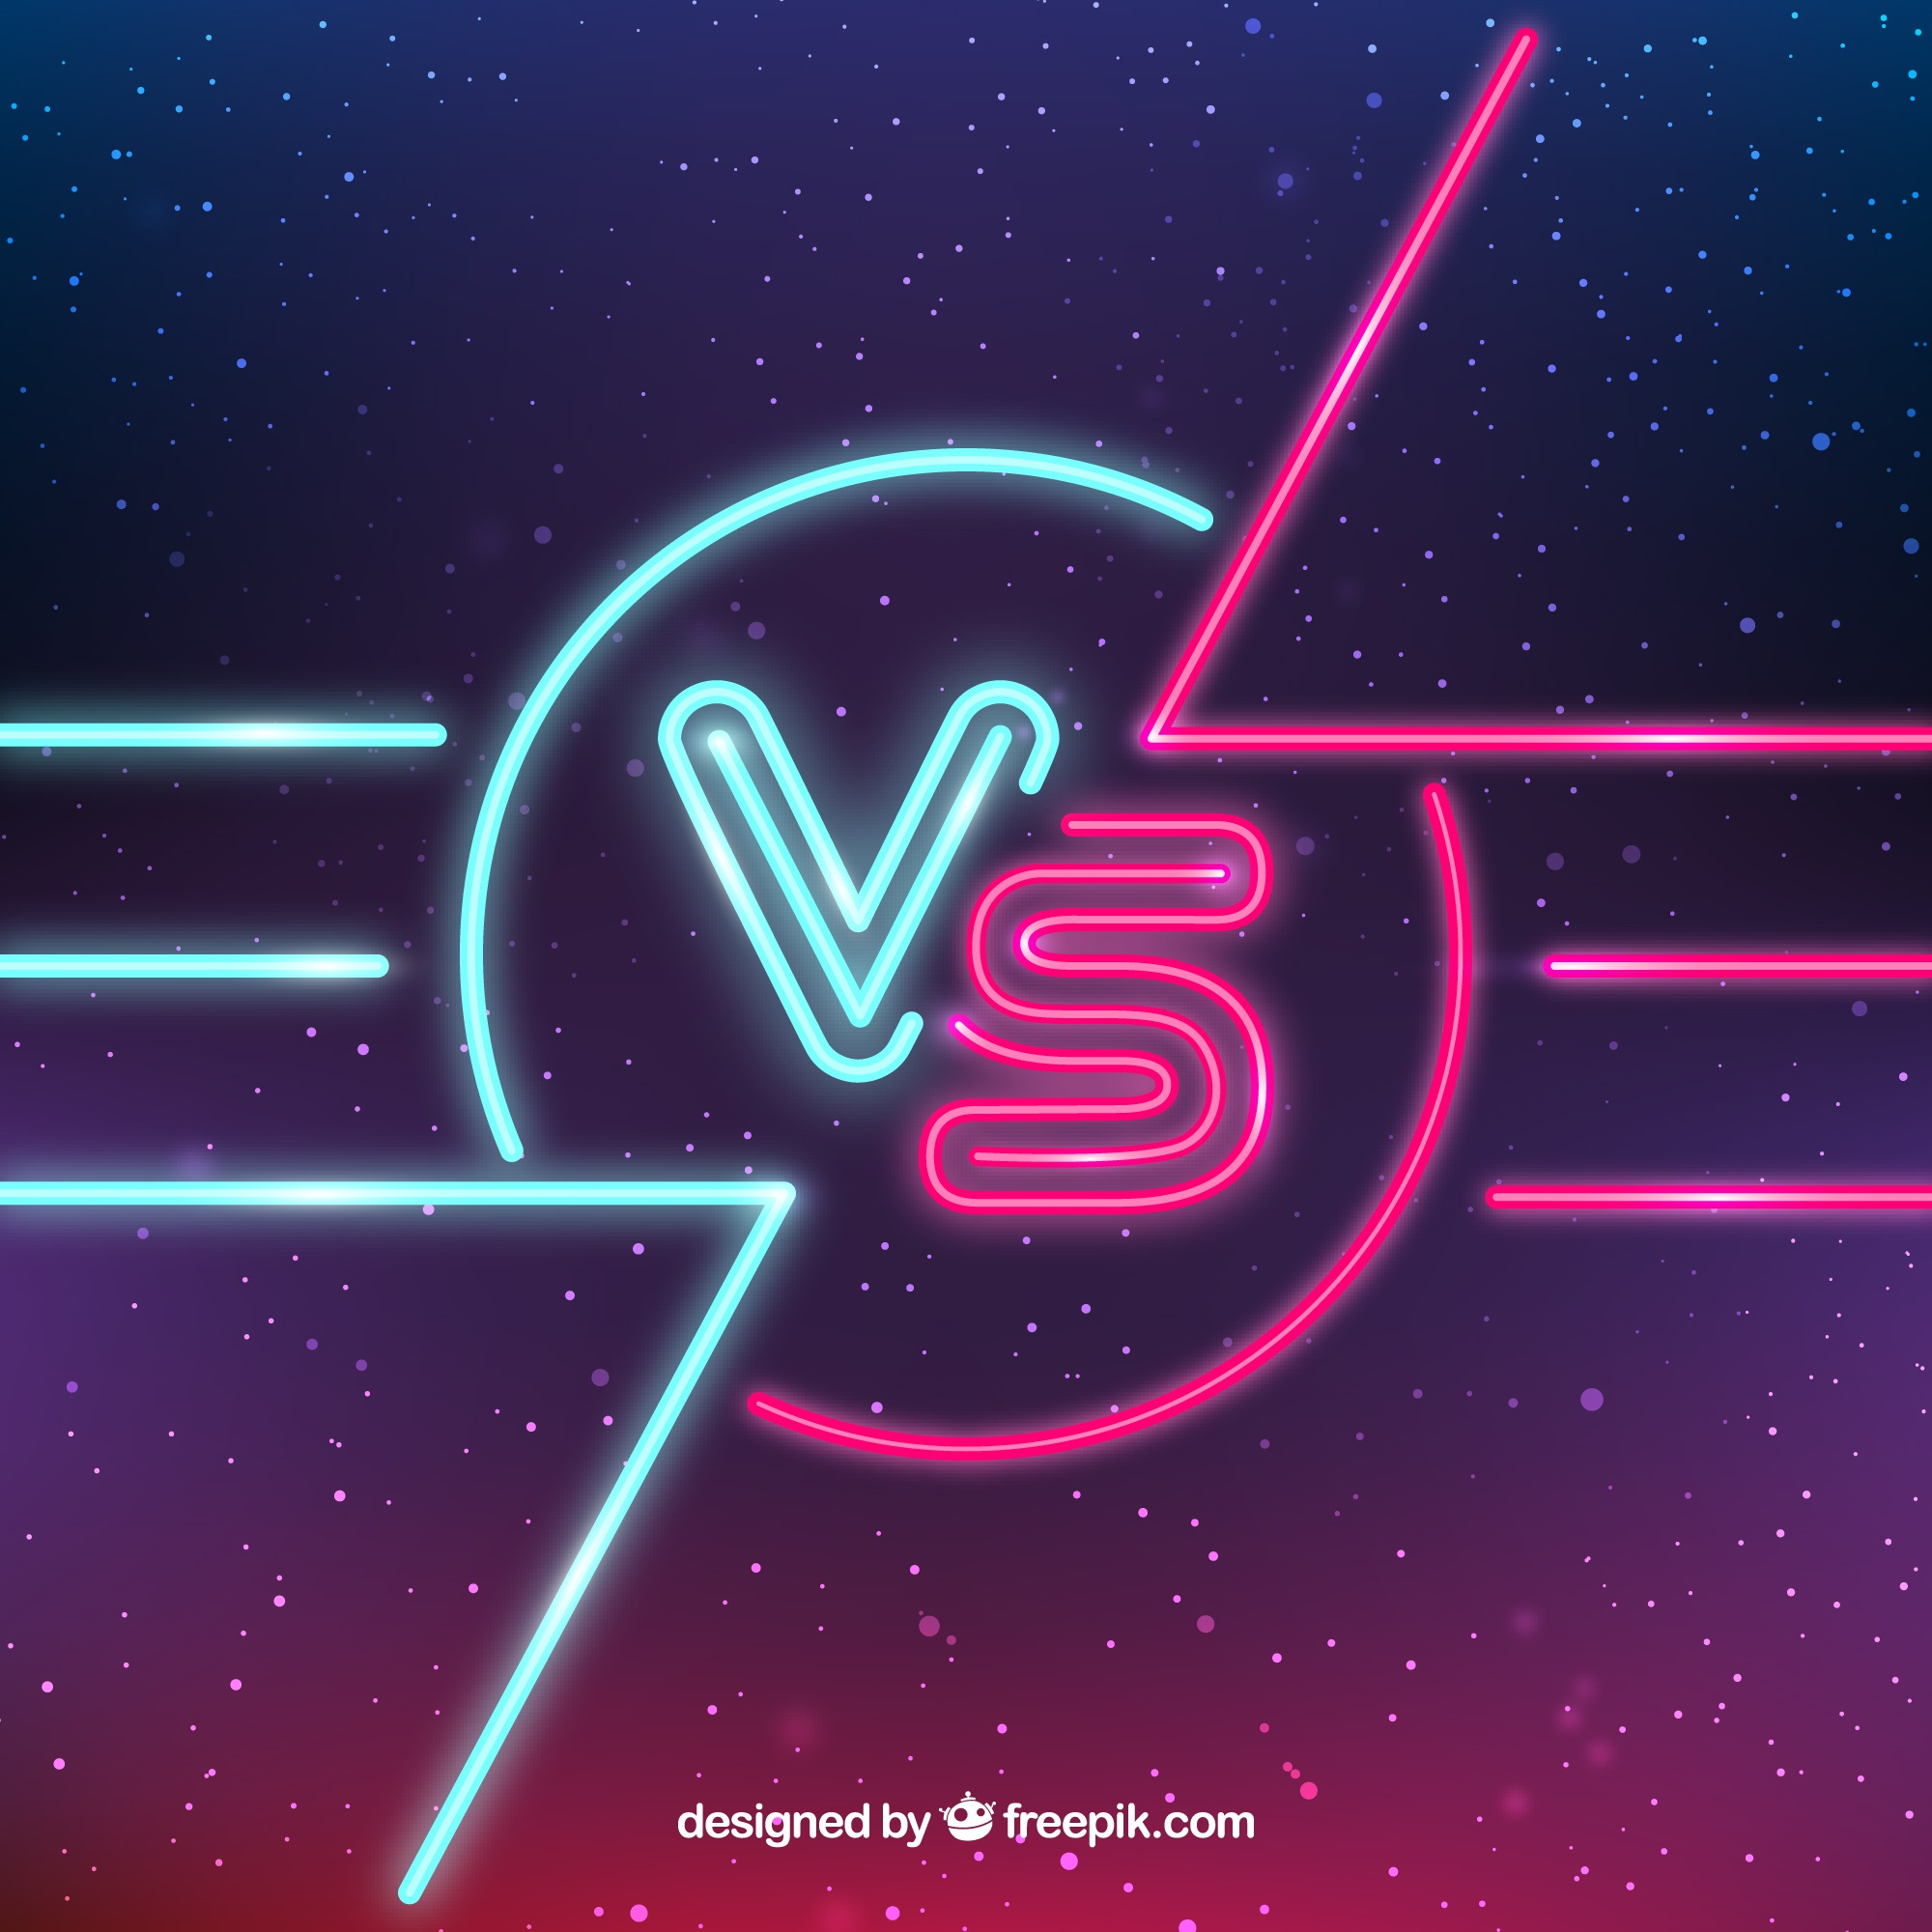 Versus with neon lights and space style